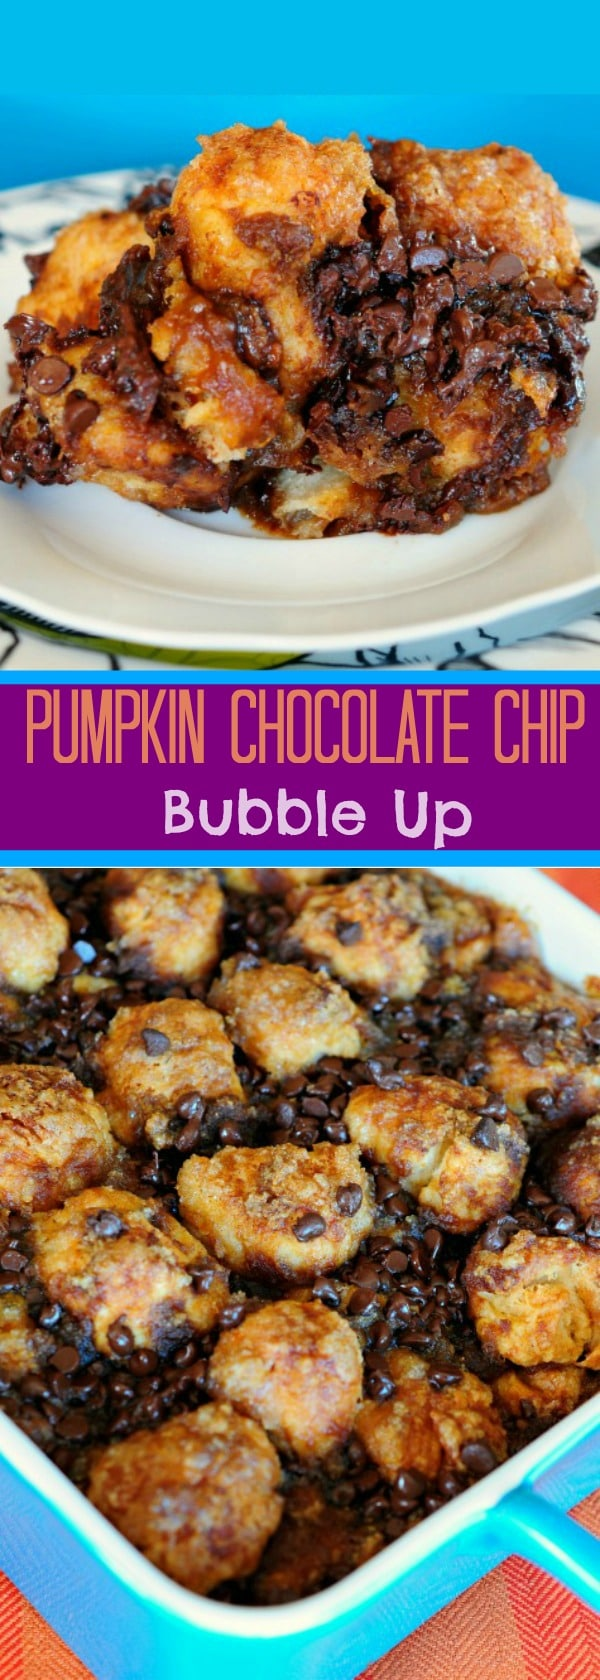 Pumpkin Chocolate Chip Bubble Up Bake